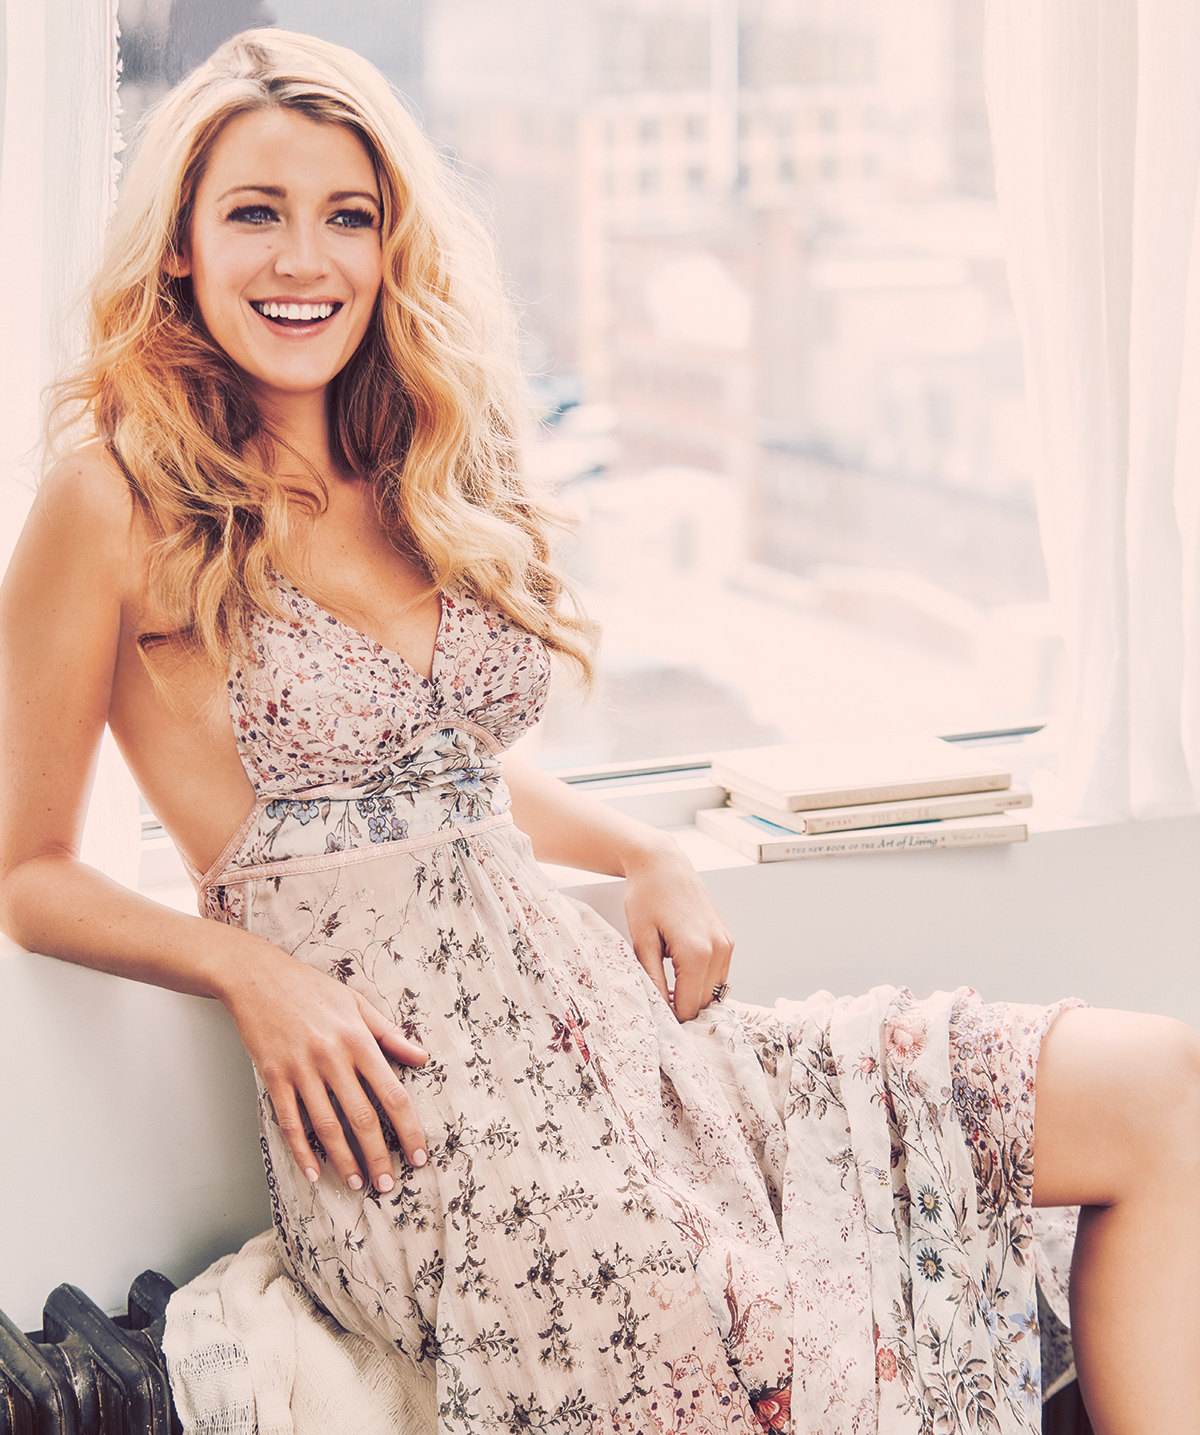 Blake Lively Fashion Model